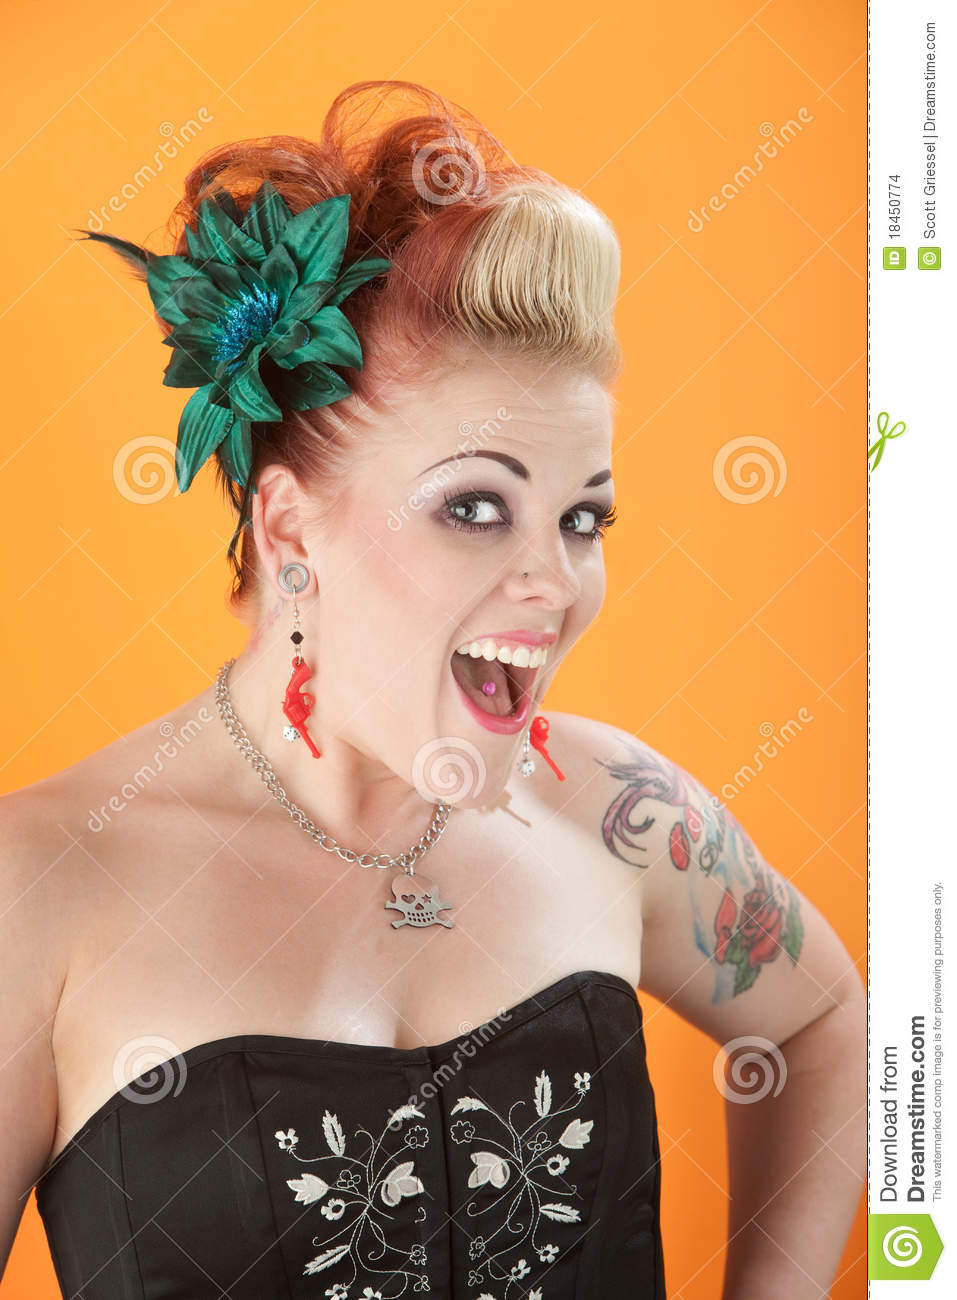 Feminine Tattoos Woman With Tattoos And Pierced Tongue Stock Photo - Image